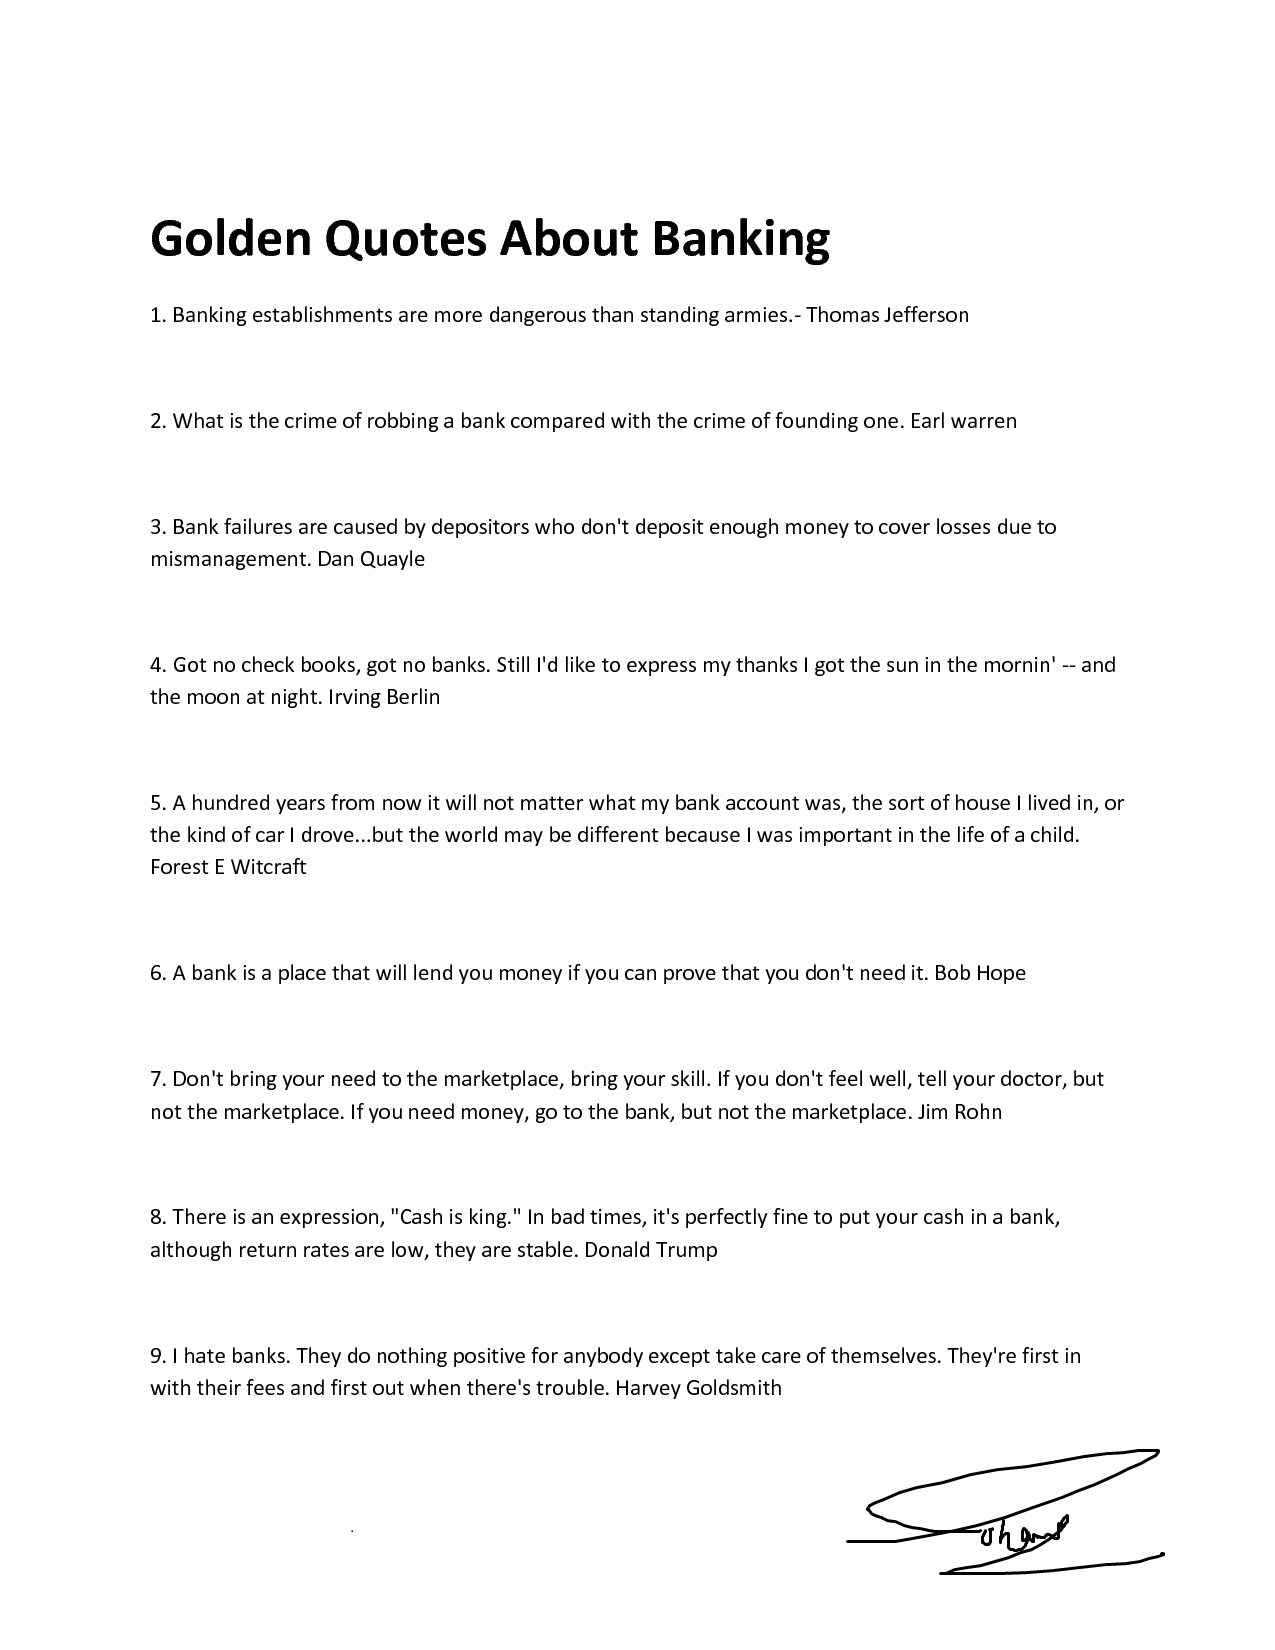 Bank quote #5